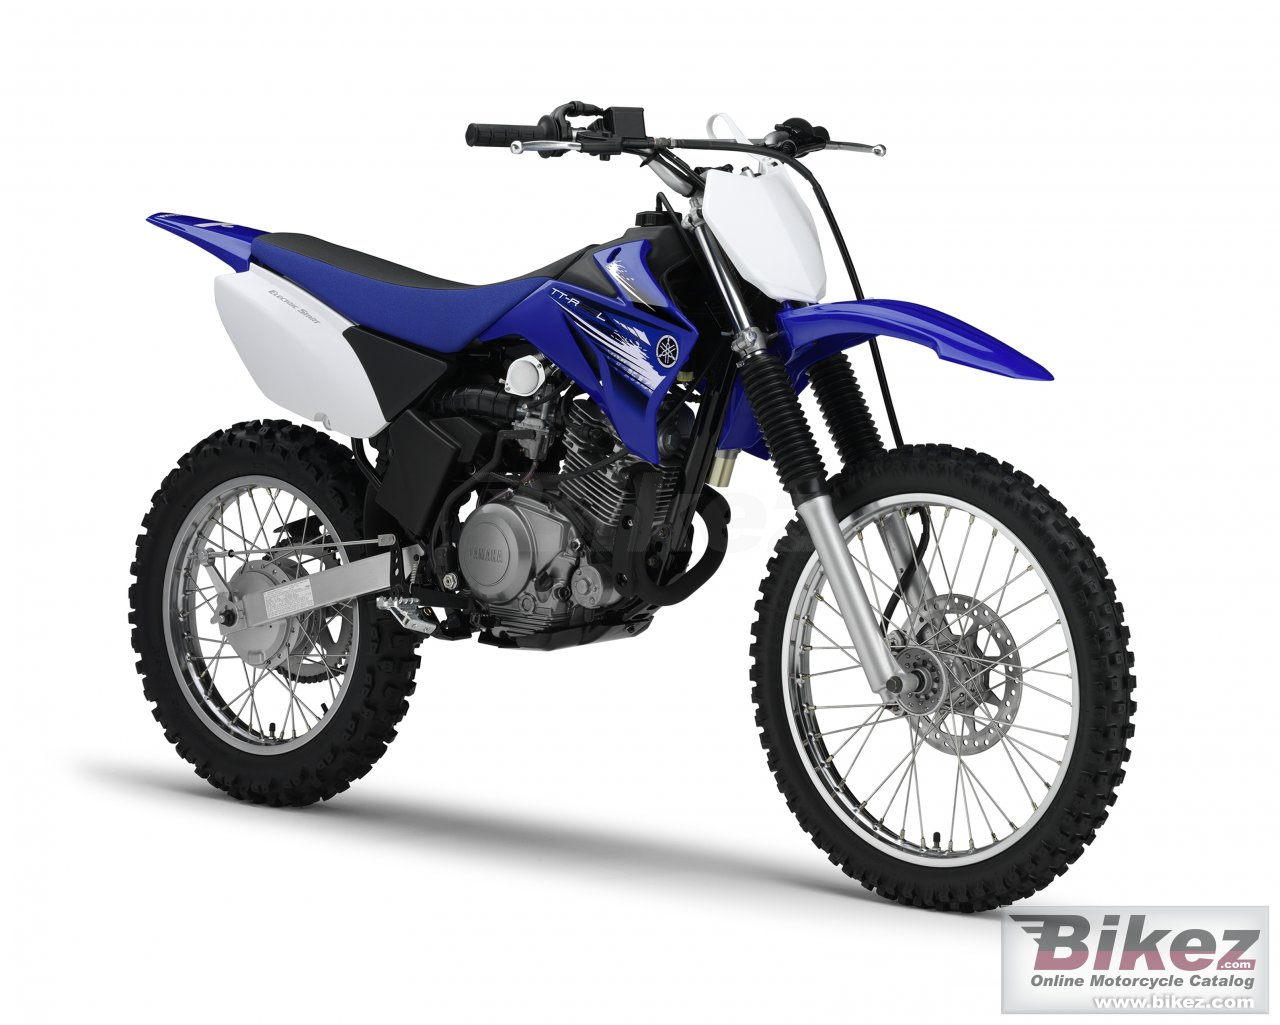 Big Yamaha tt-r125lwe picture and wallpaper from Bikez.com